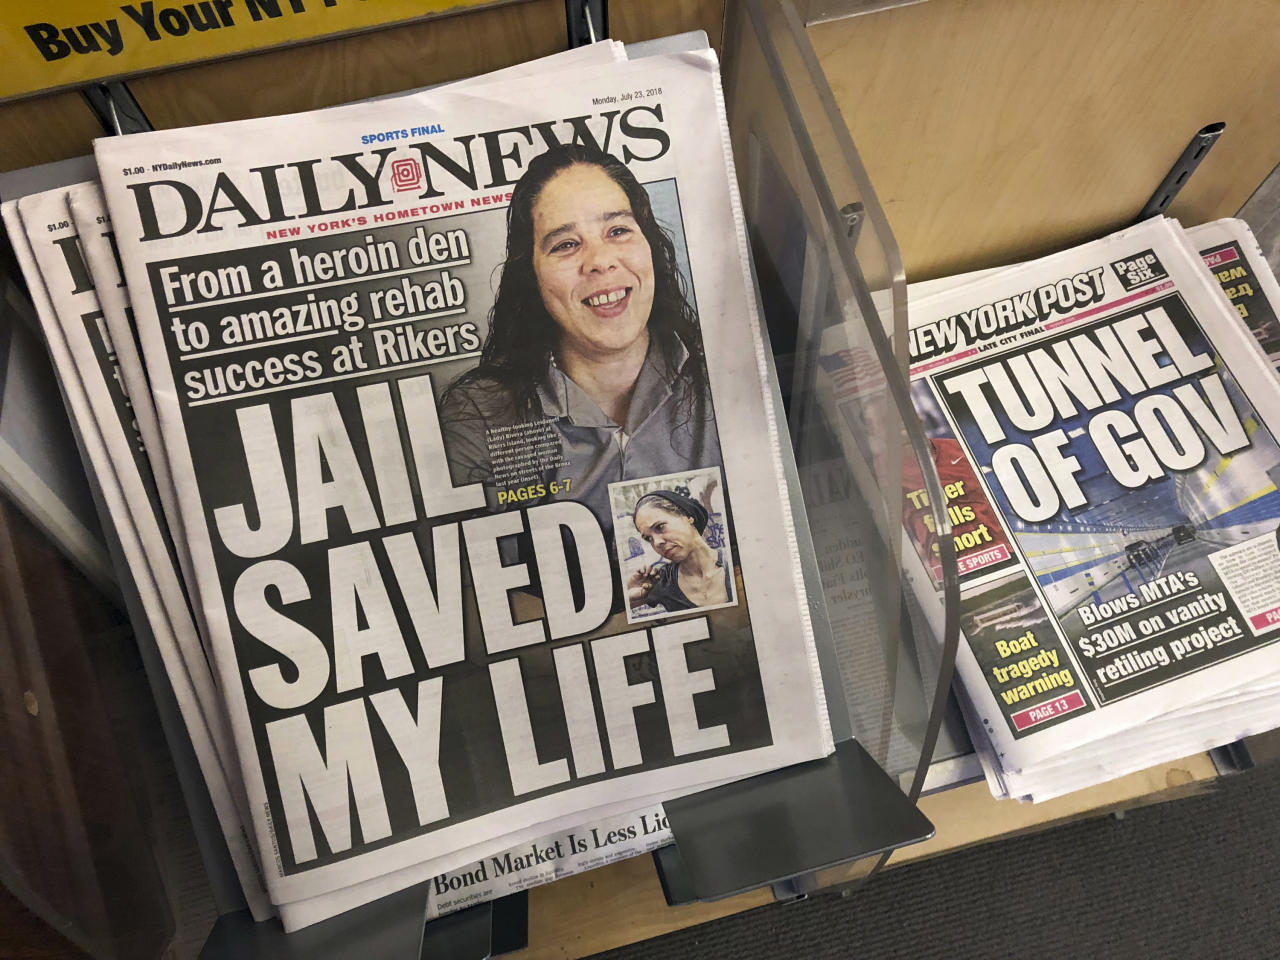 Copies of the New York Daily News are for sale at a news stand in New York, Monday, July 23, 2018, after the paper told employees that the newspaper is reducing its editorial staff by 50 percent. (AP Photo/Mark Lennihan)